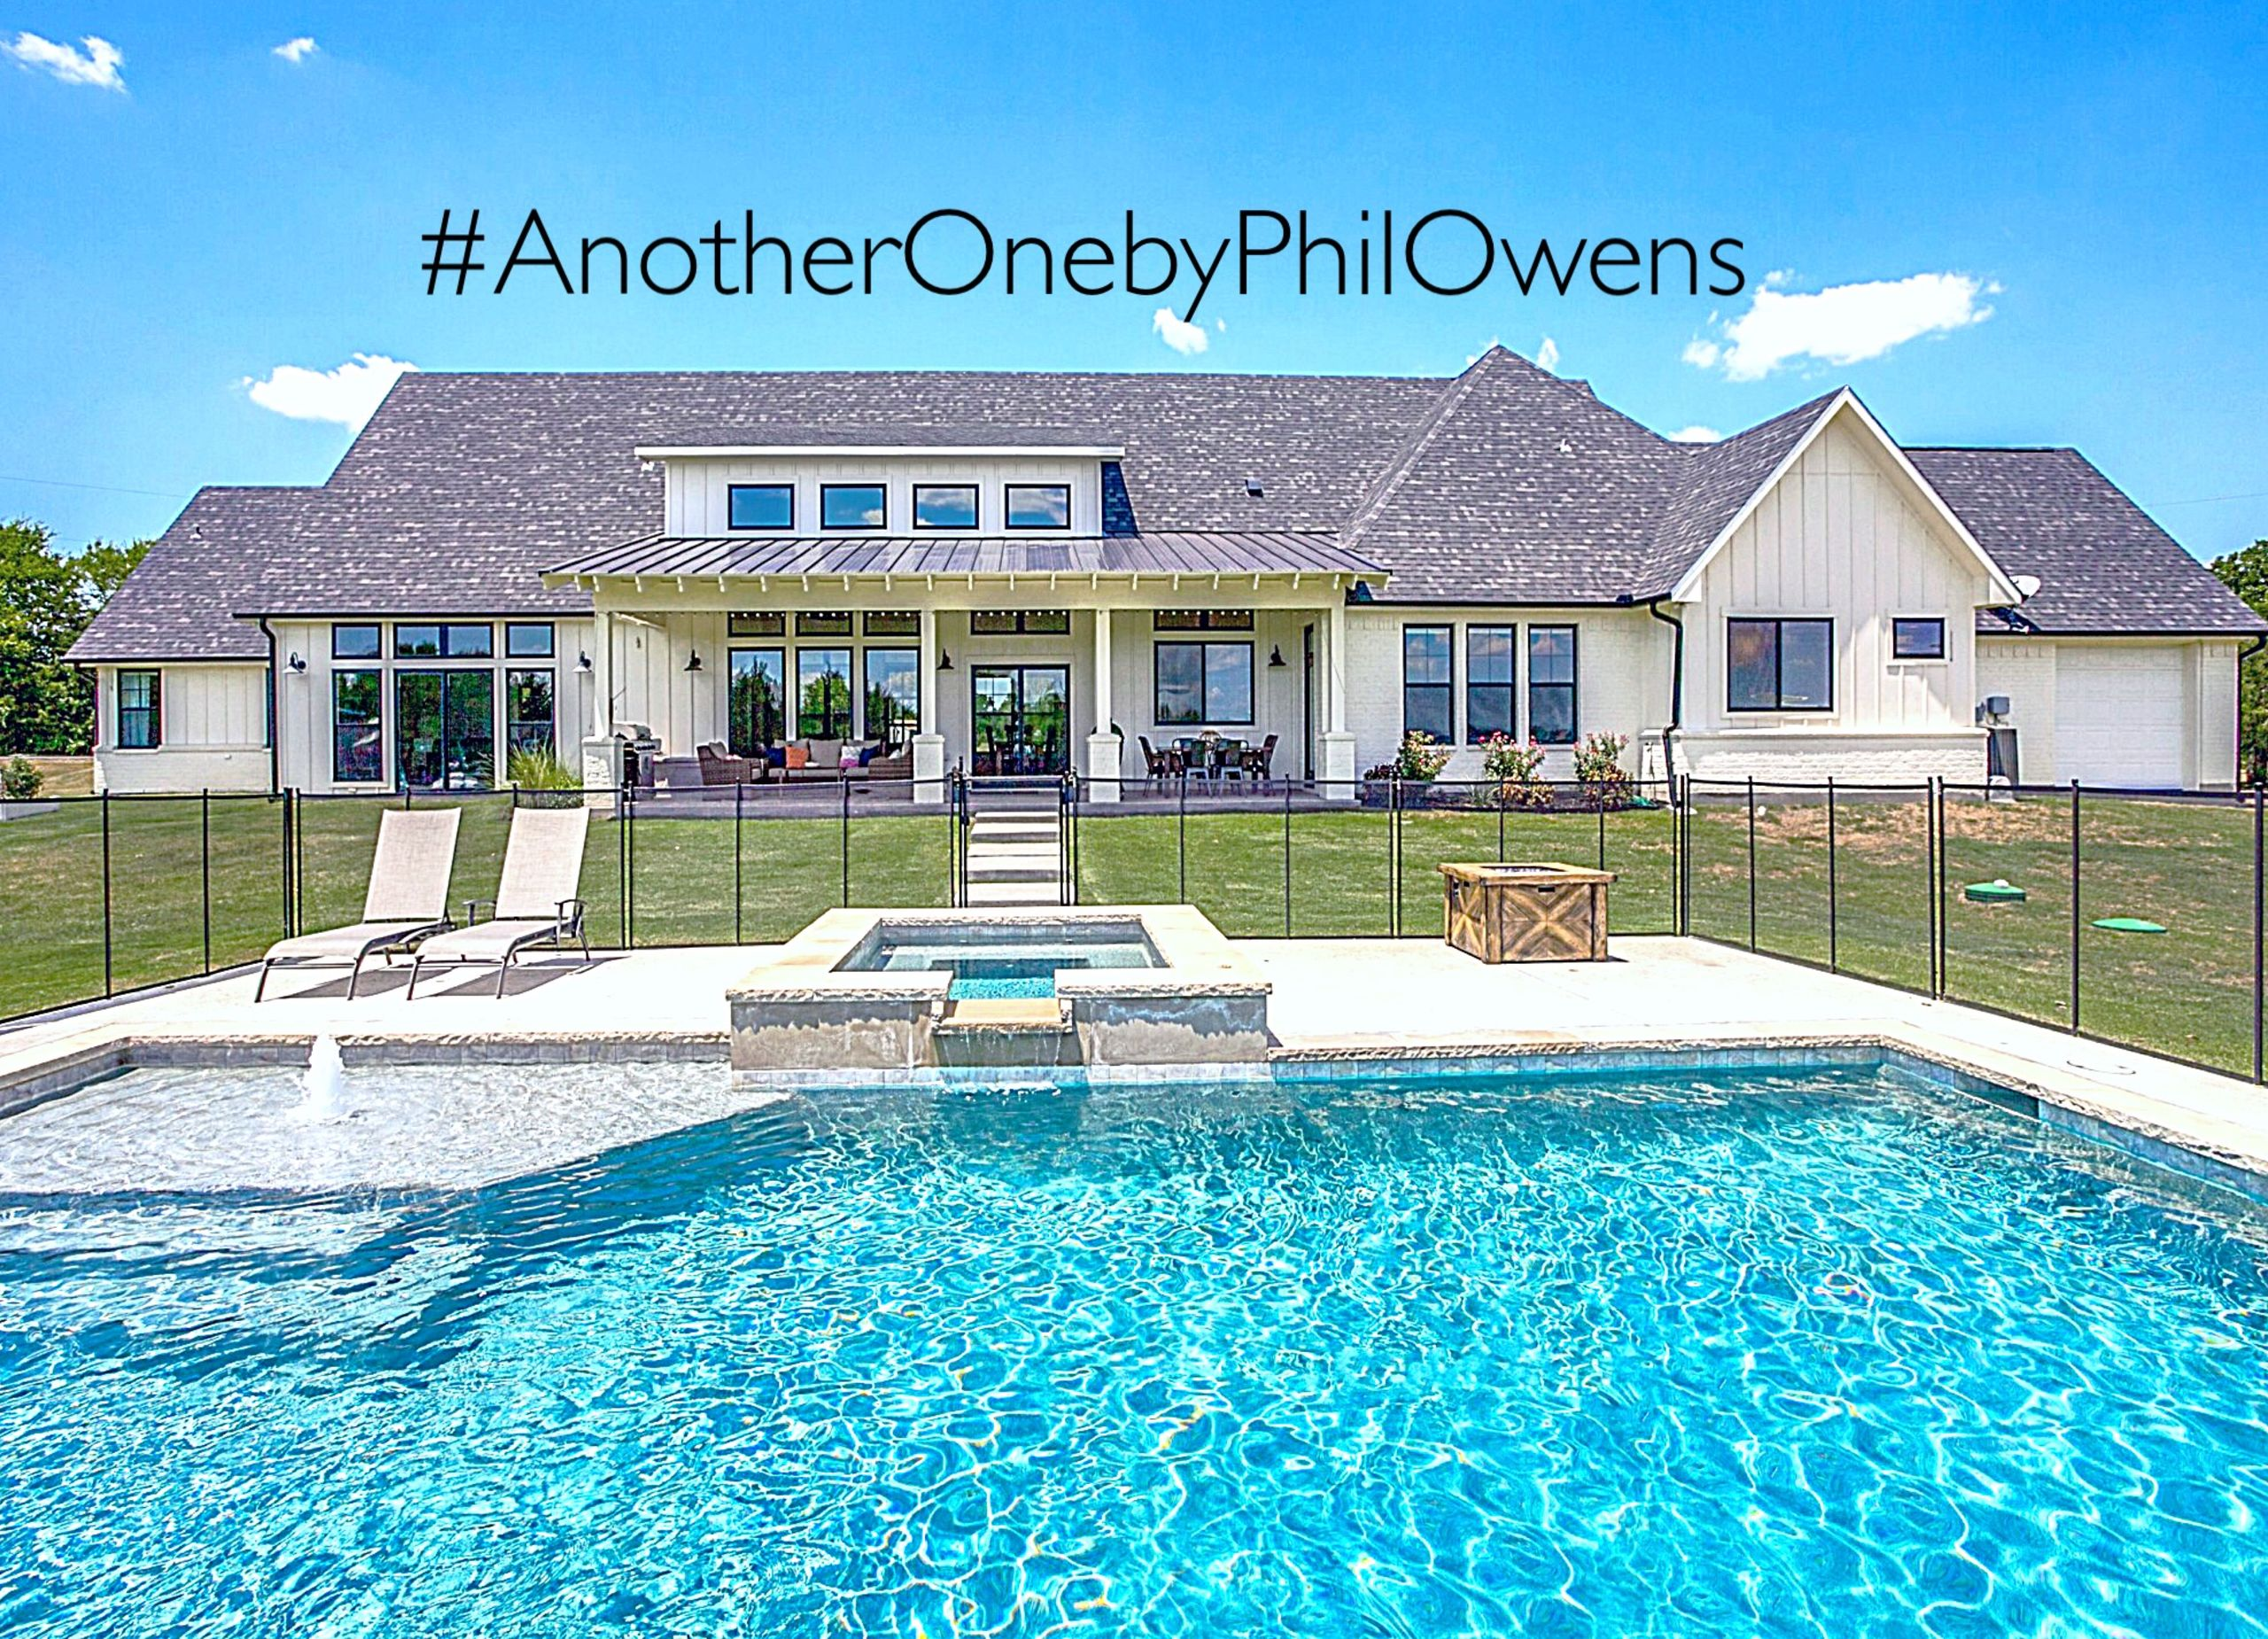 Pleasing Phil Owens Dfw Luxury Home Realtor Dallas Texas Luxury Home Interior And Landscaping Ponolsignezvosmurscom